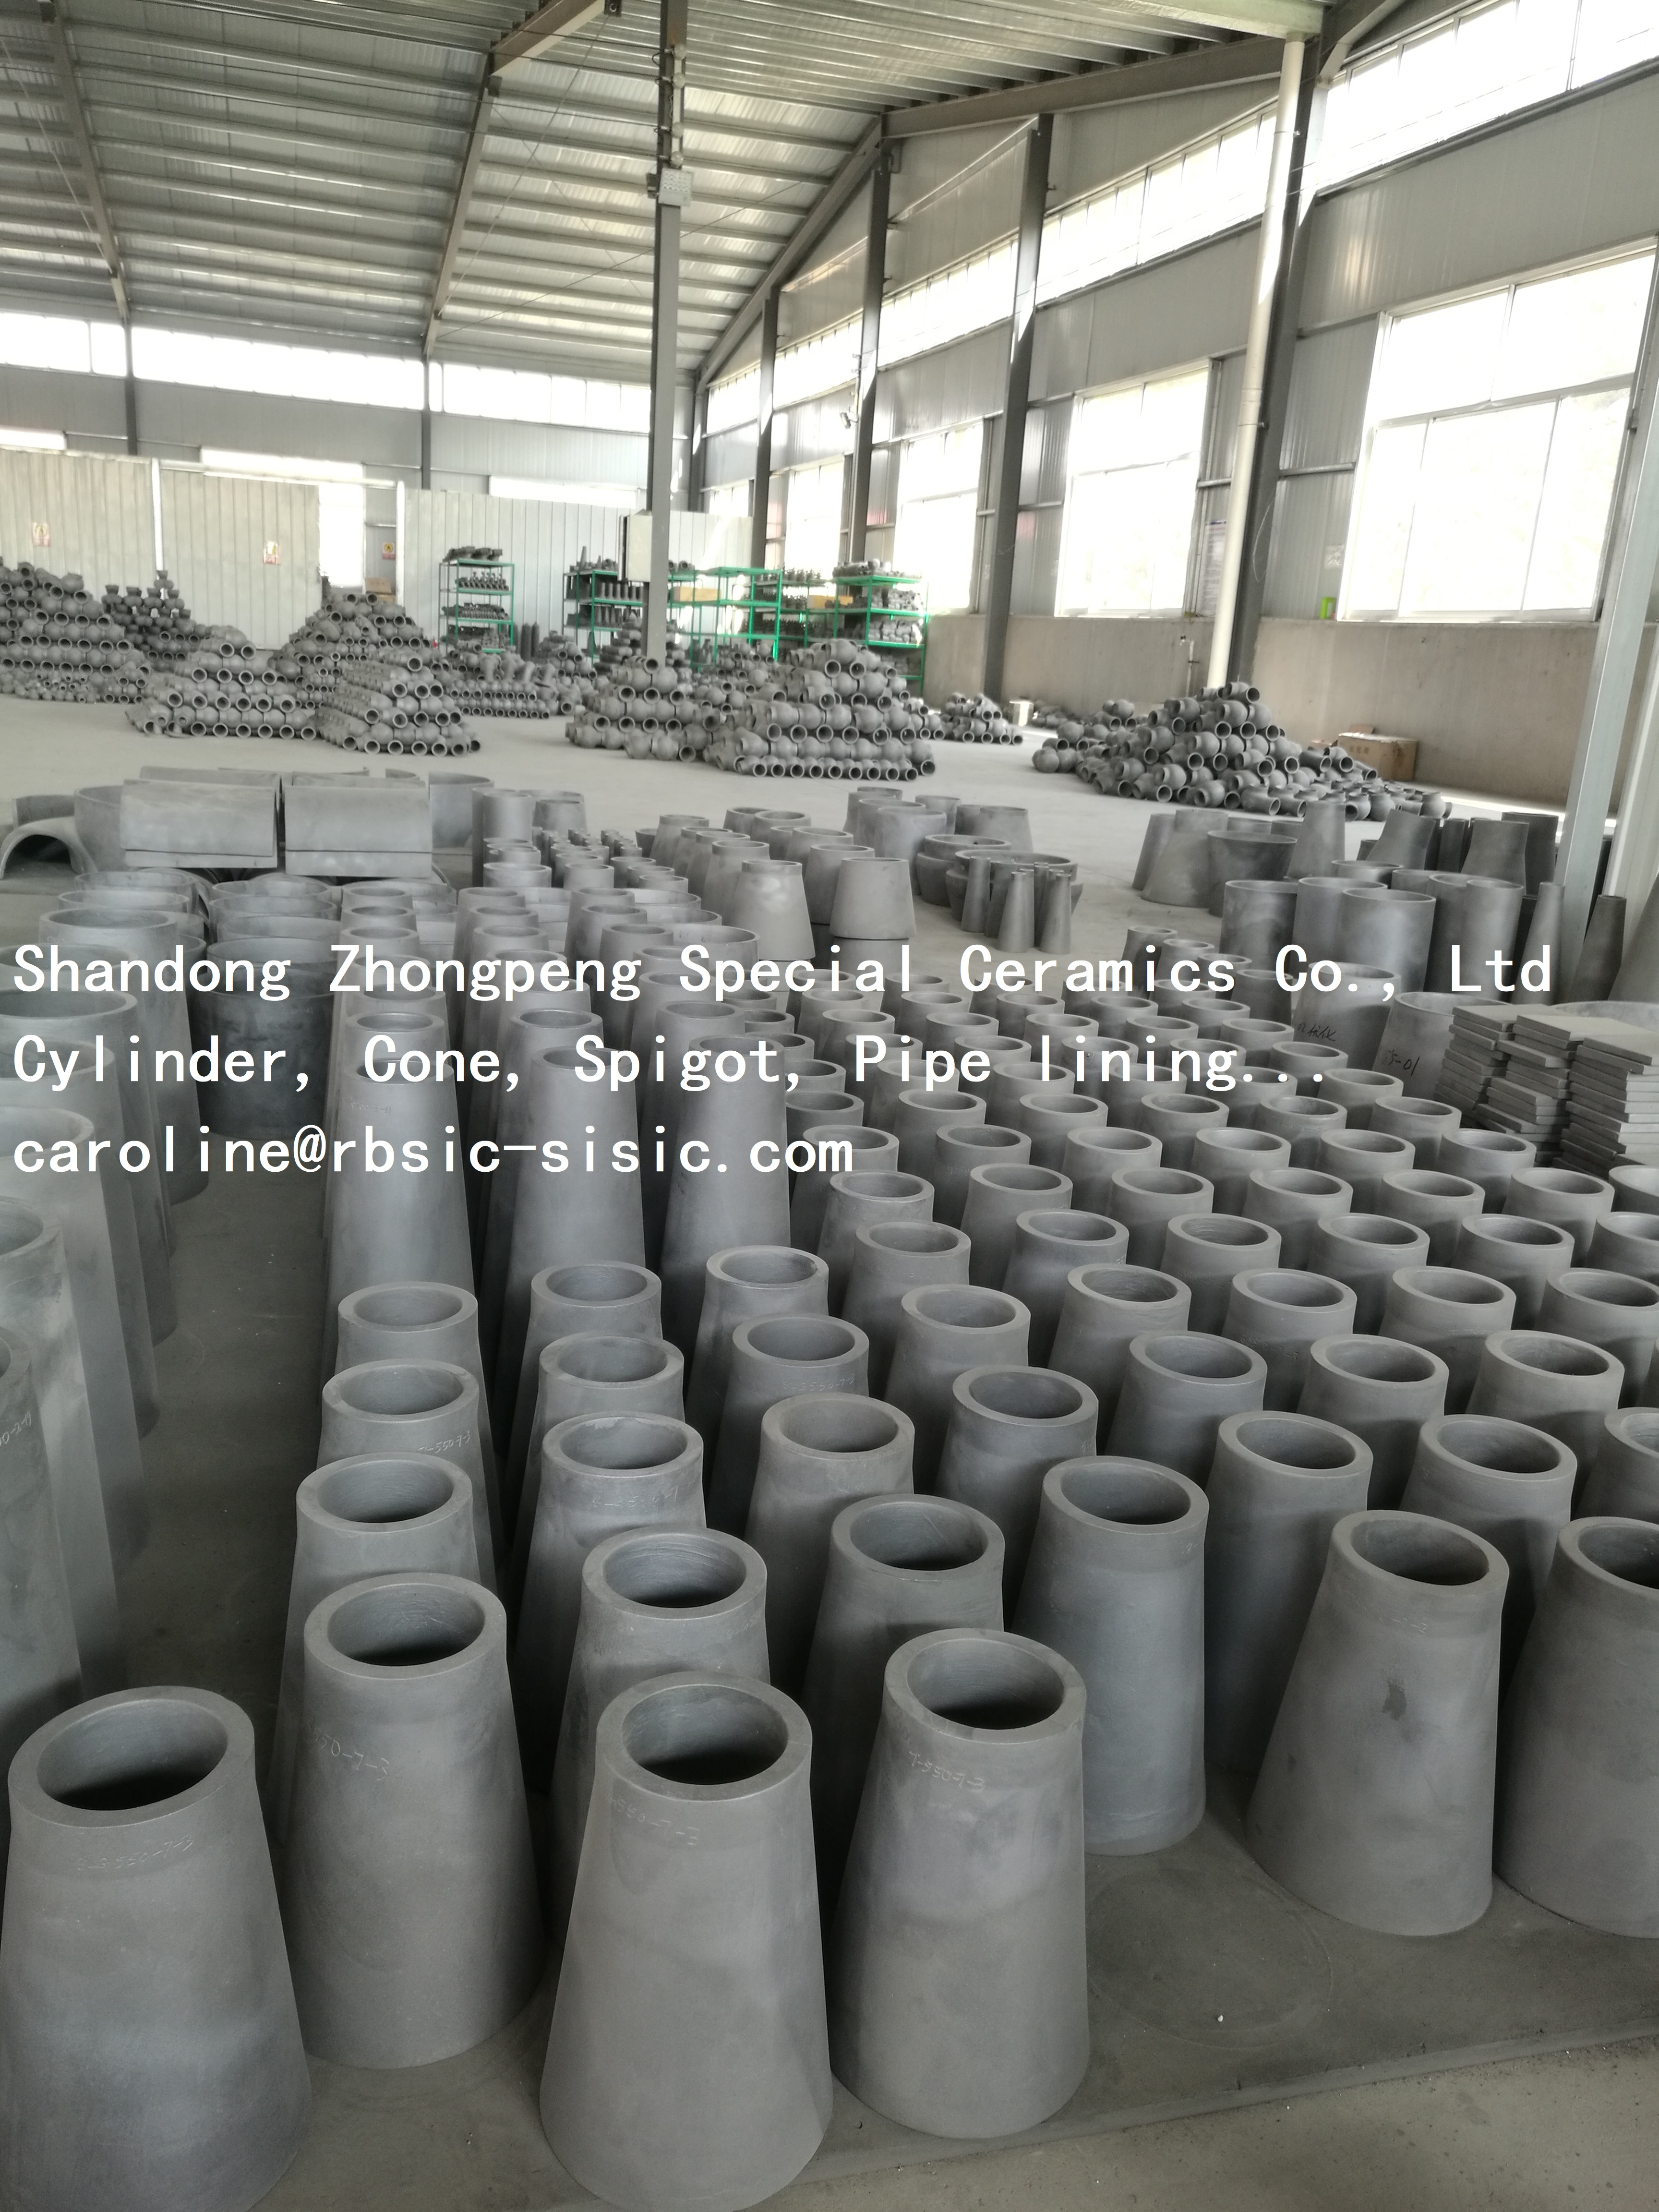 Silicon carbide SiC cylinder, cone, spigot Featured Image